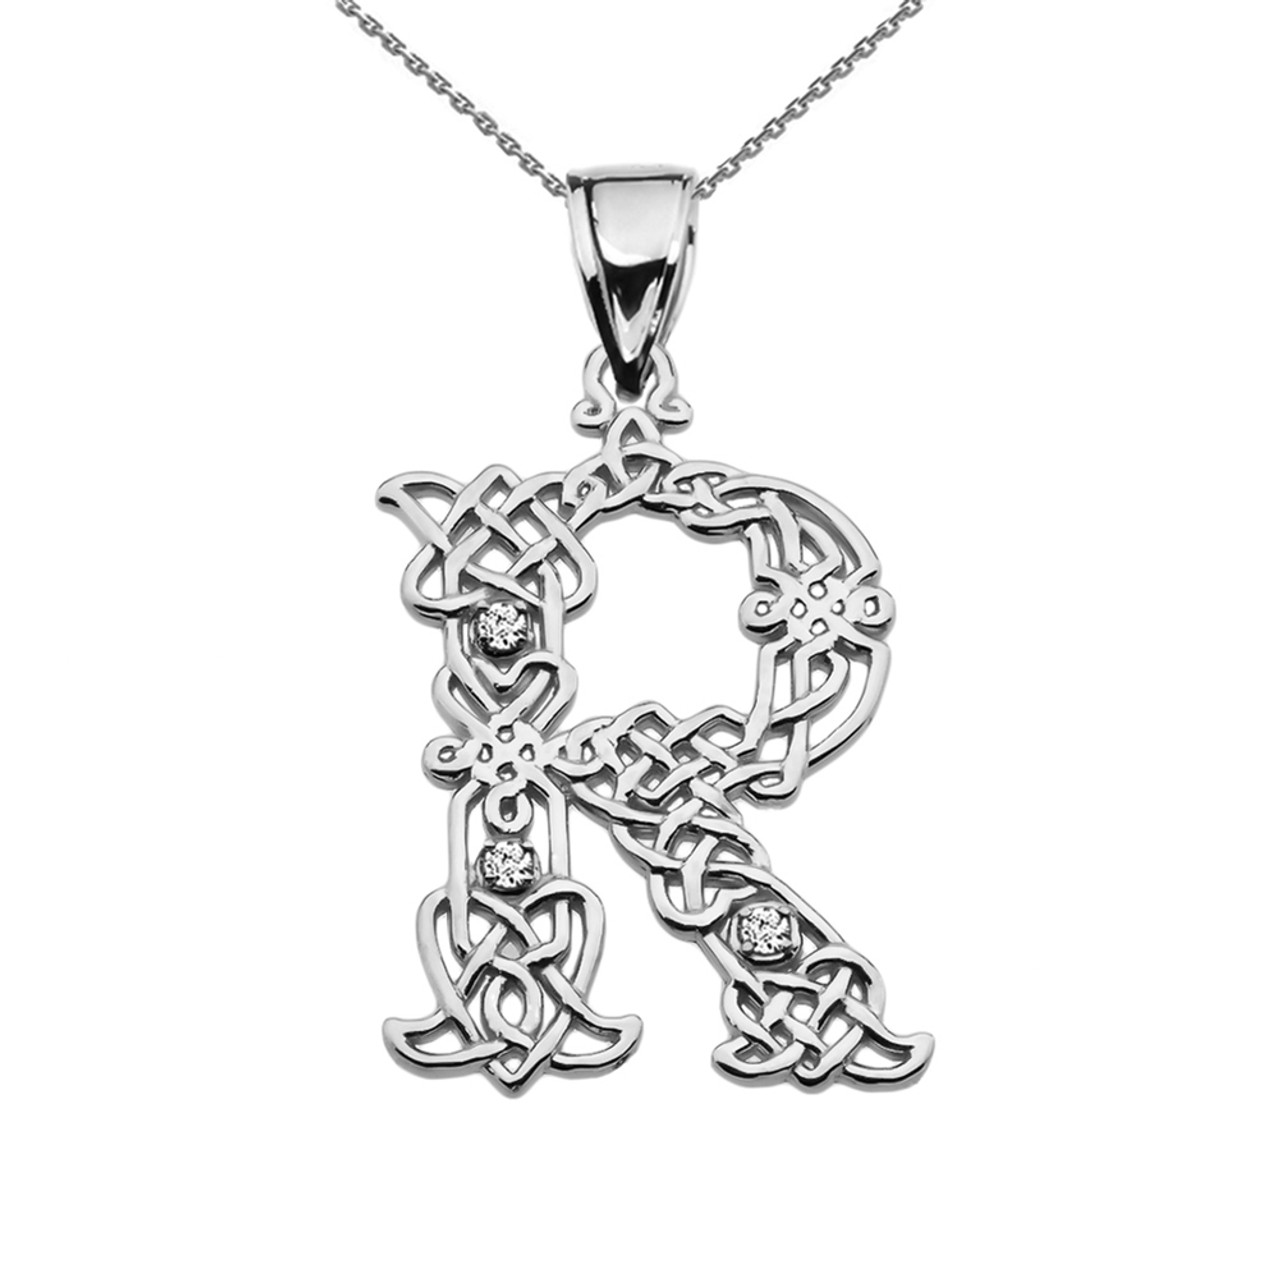 Cz r initial in celtic pattern sterling silver pendant necklace r initial in celtic knot pattern sterling silver pendant necklace with cz mozeypictures Image collections